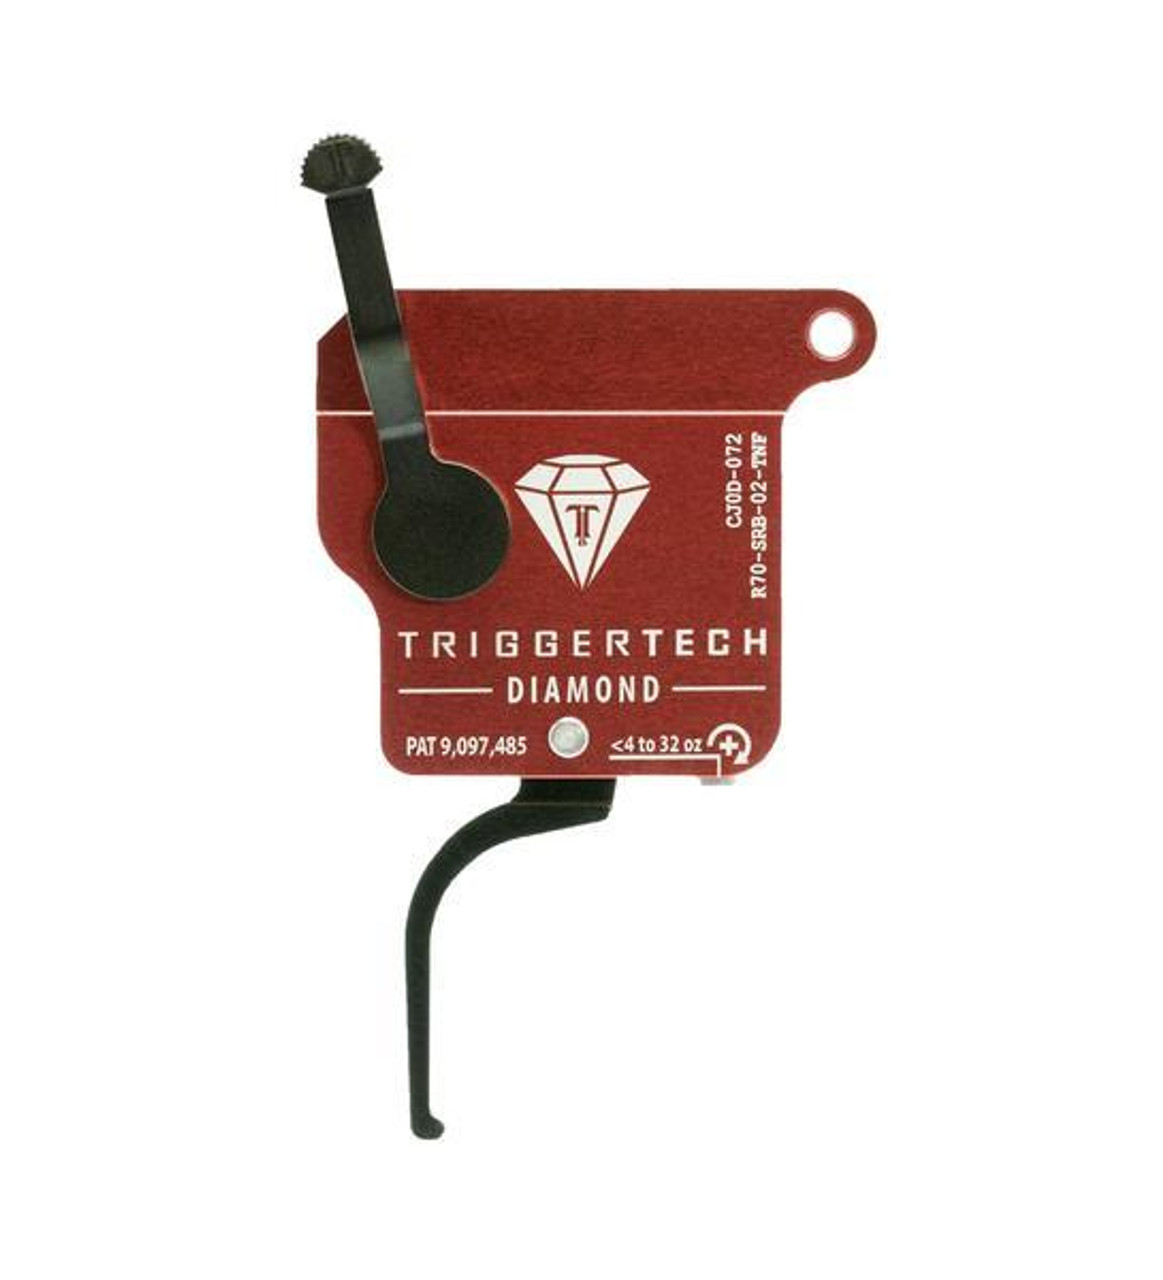 TriggerTech Remington 700 Diamond Trigger